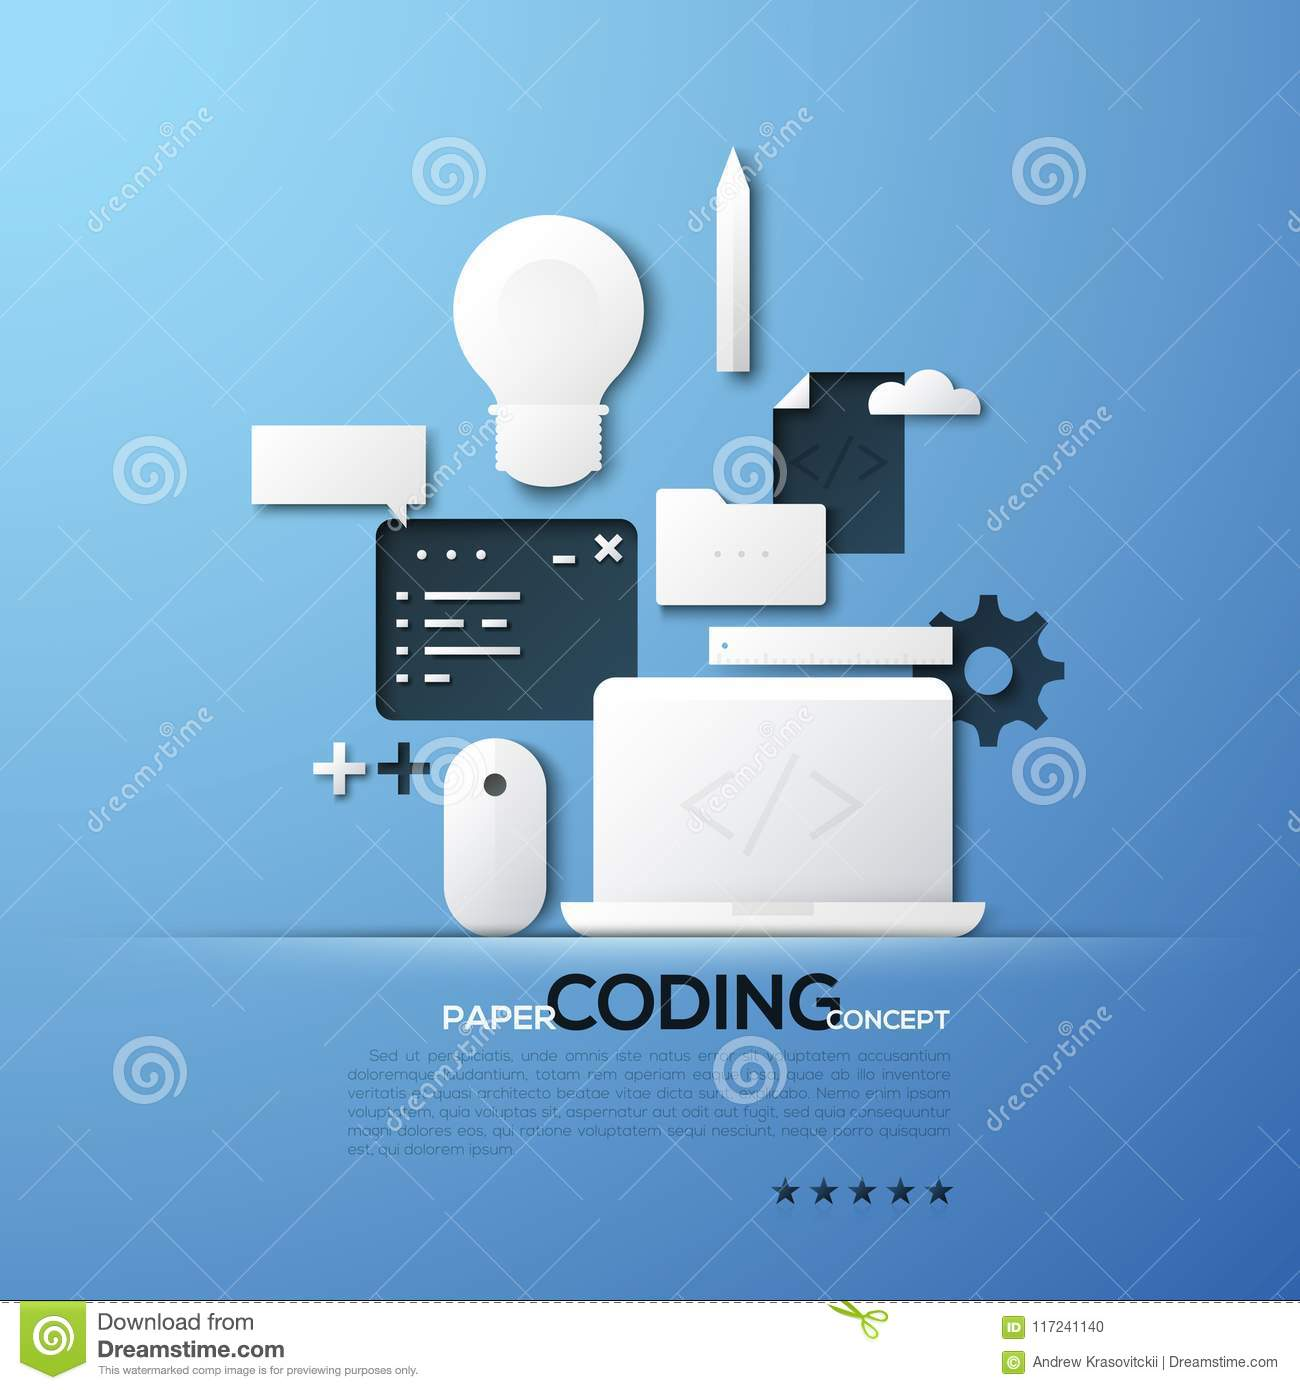 Paper concept of coding, front and back end software development, program code testing. White silhouettes of laptop